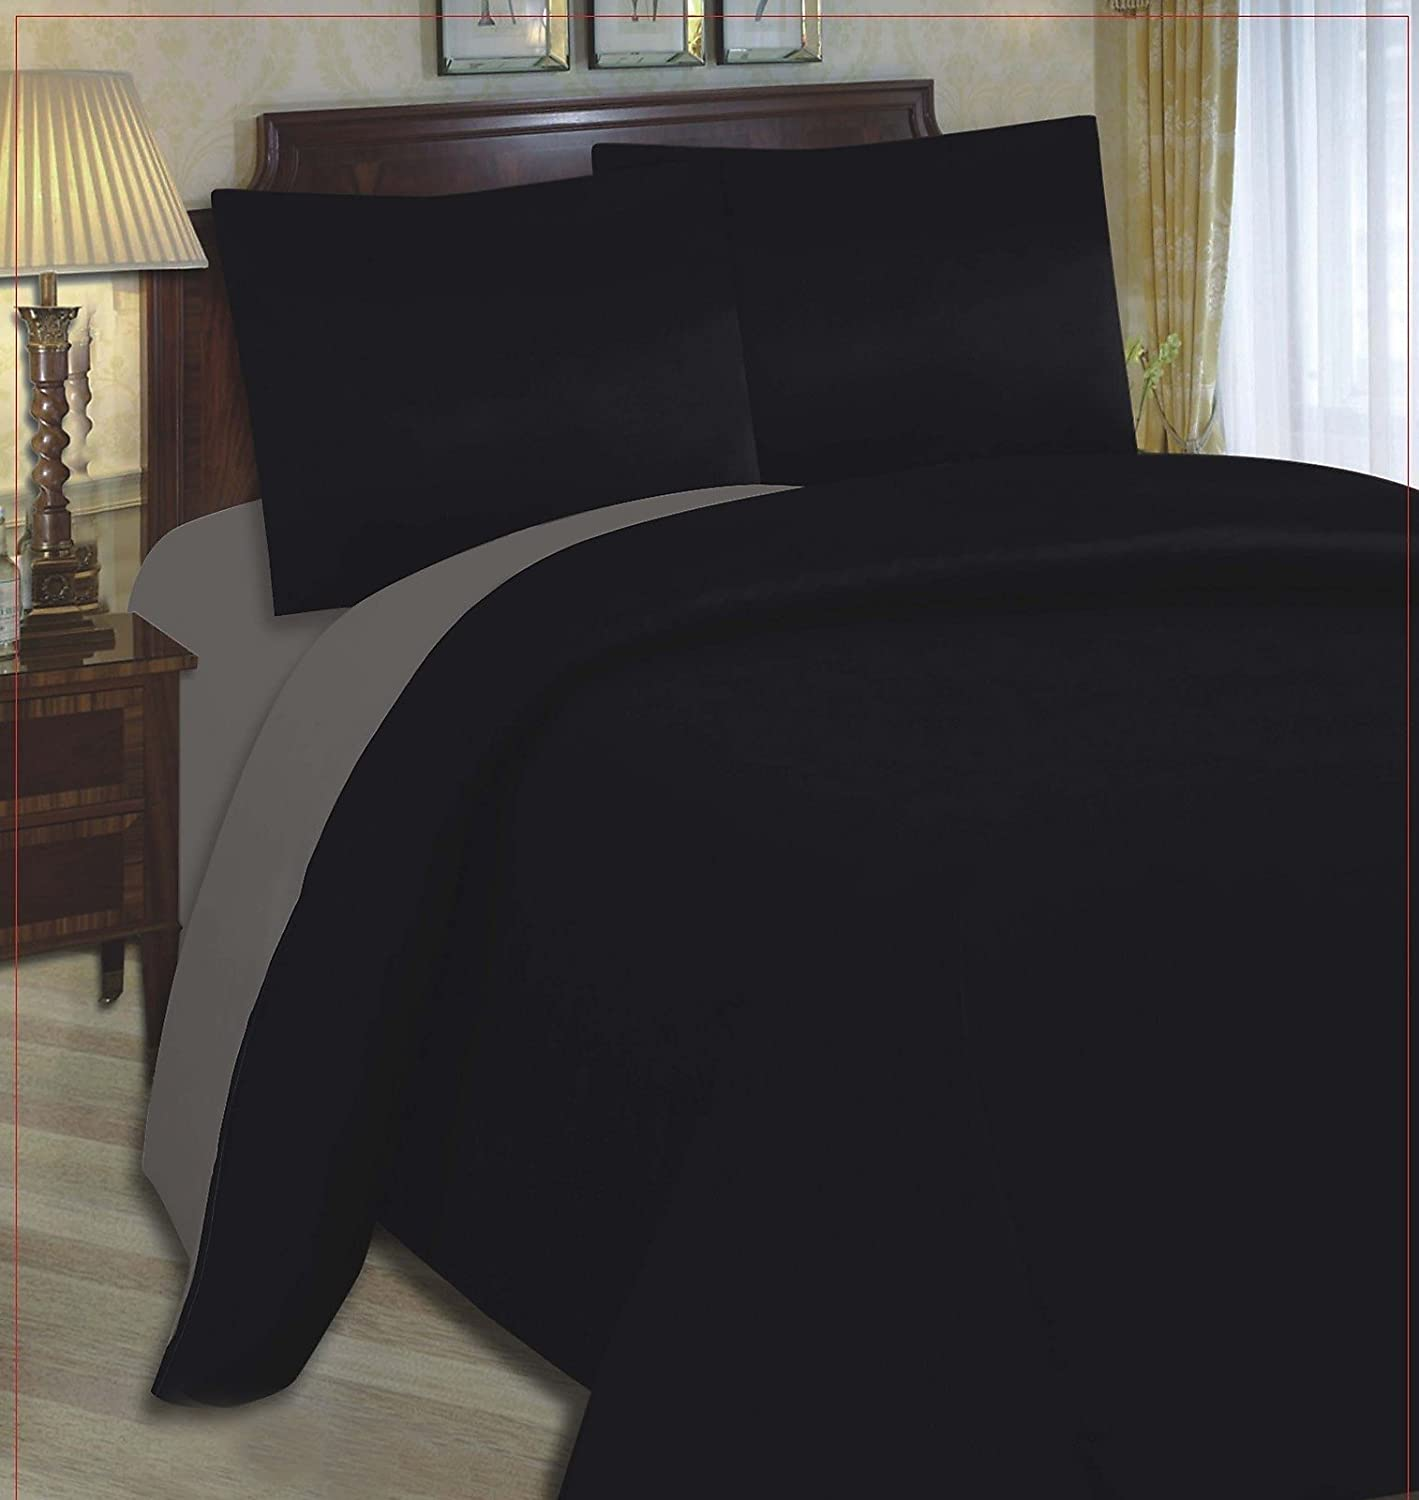 CLEARANCE CHEAP BEDDING SETS   3pc Bed Set Duvet Cover + Plain Fitted  Sheets Black U0026 Grey Single Quilt Cover + Sheet: Amazon.co.uk: Kitchen U0026 Home